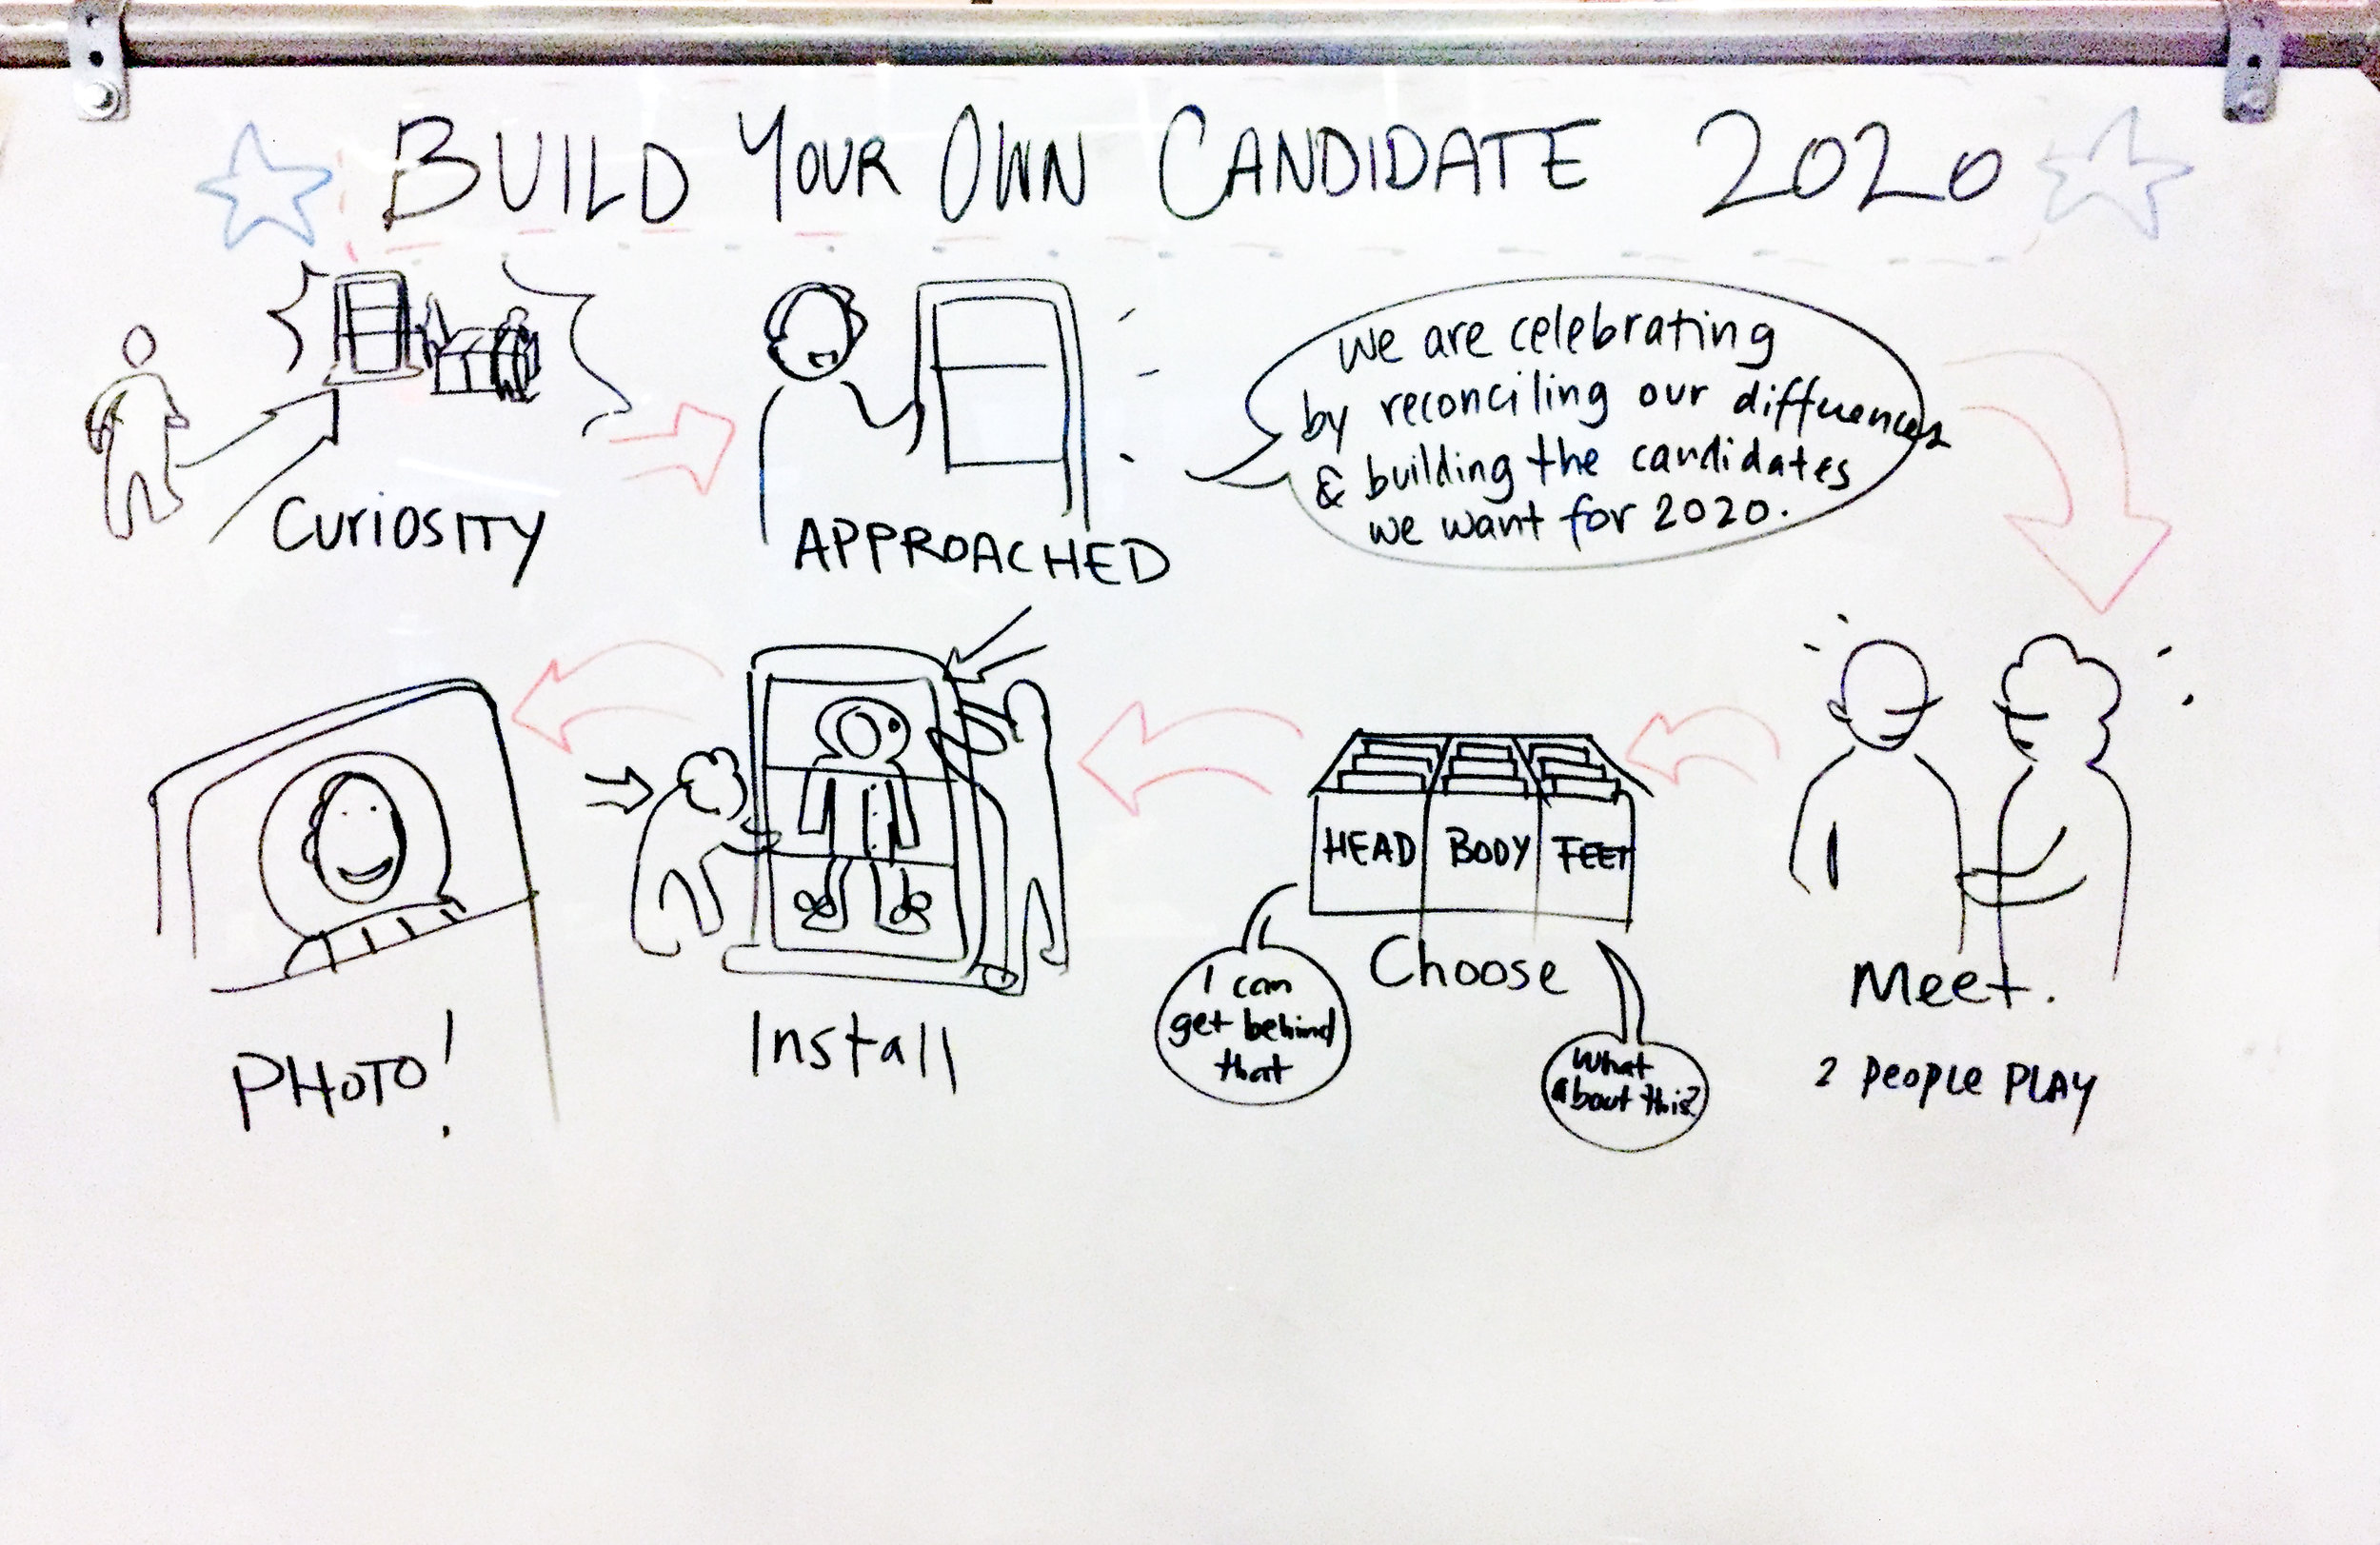 """What It Is - Inspired by the exquisite corpse game, The Exquisite Candidate aimed to move past the differences highlighted in the 2016 election by asking participants """"to build their ideal candidate—together."""" Pairs of participants were asked to choose political statements that reflected both of their opinions, and use those cards to 'build' a candidate. The selected boards had illustrations of three body parts (head, body, and legs) printed on the back, which together formed a visual representation of their ideal candidate."""